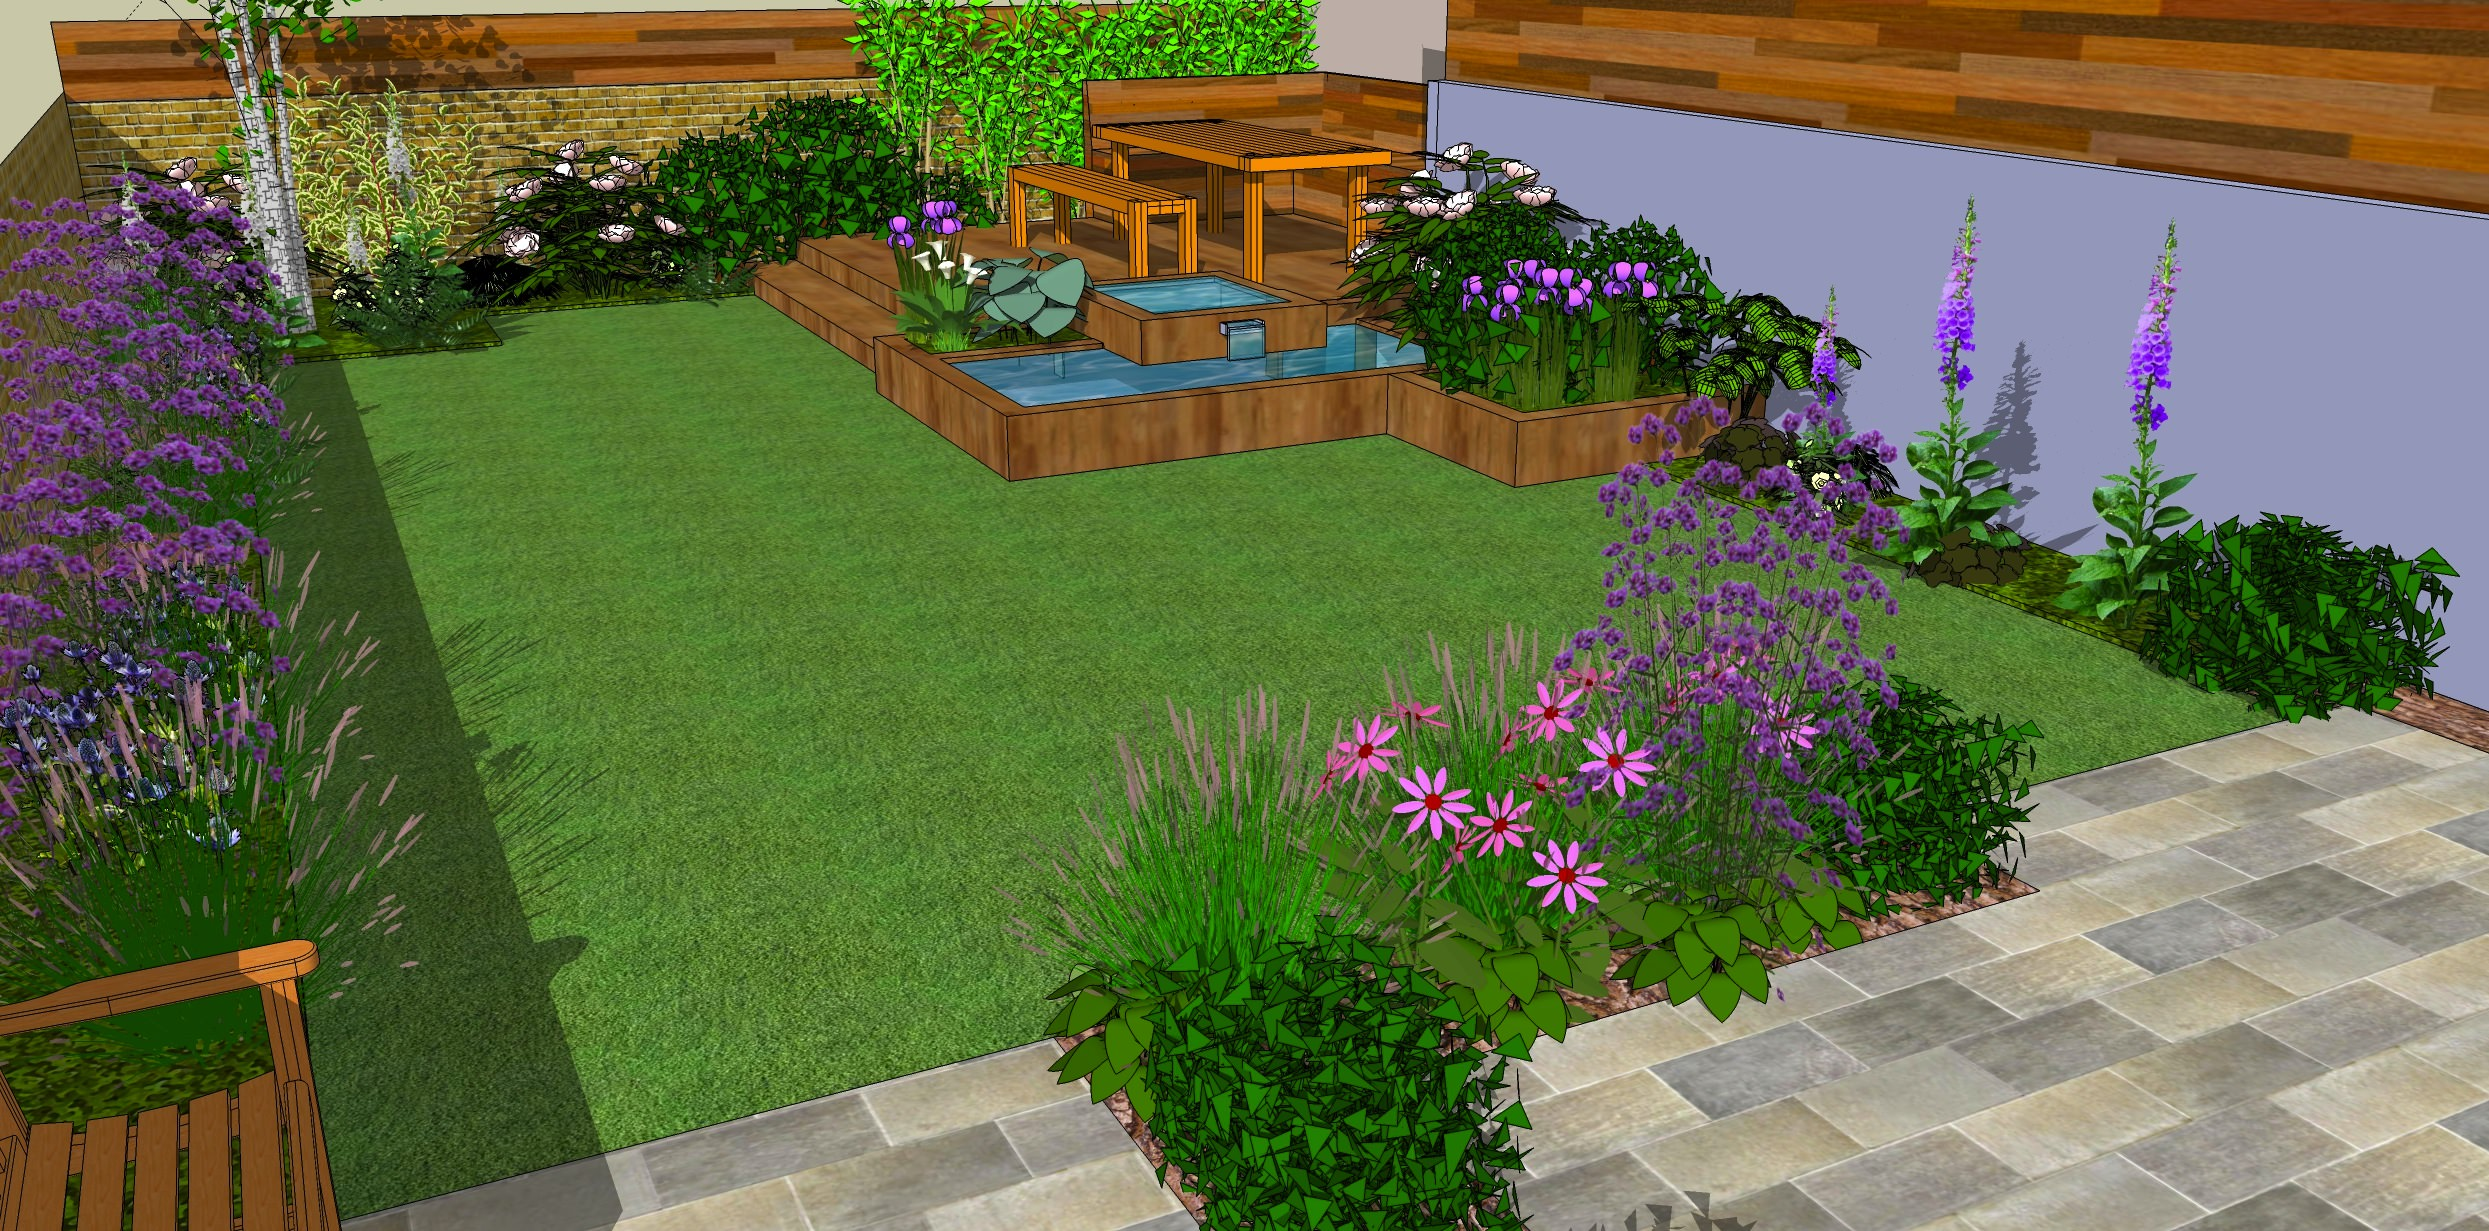 Low maintenance garden designs garden club london for Garden design plants